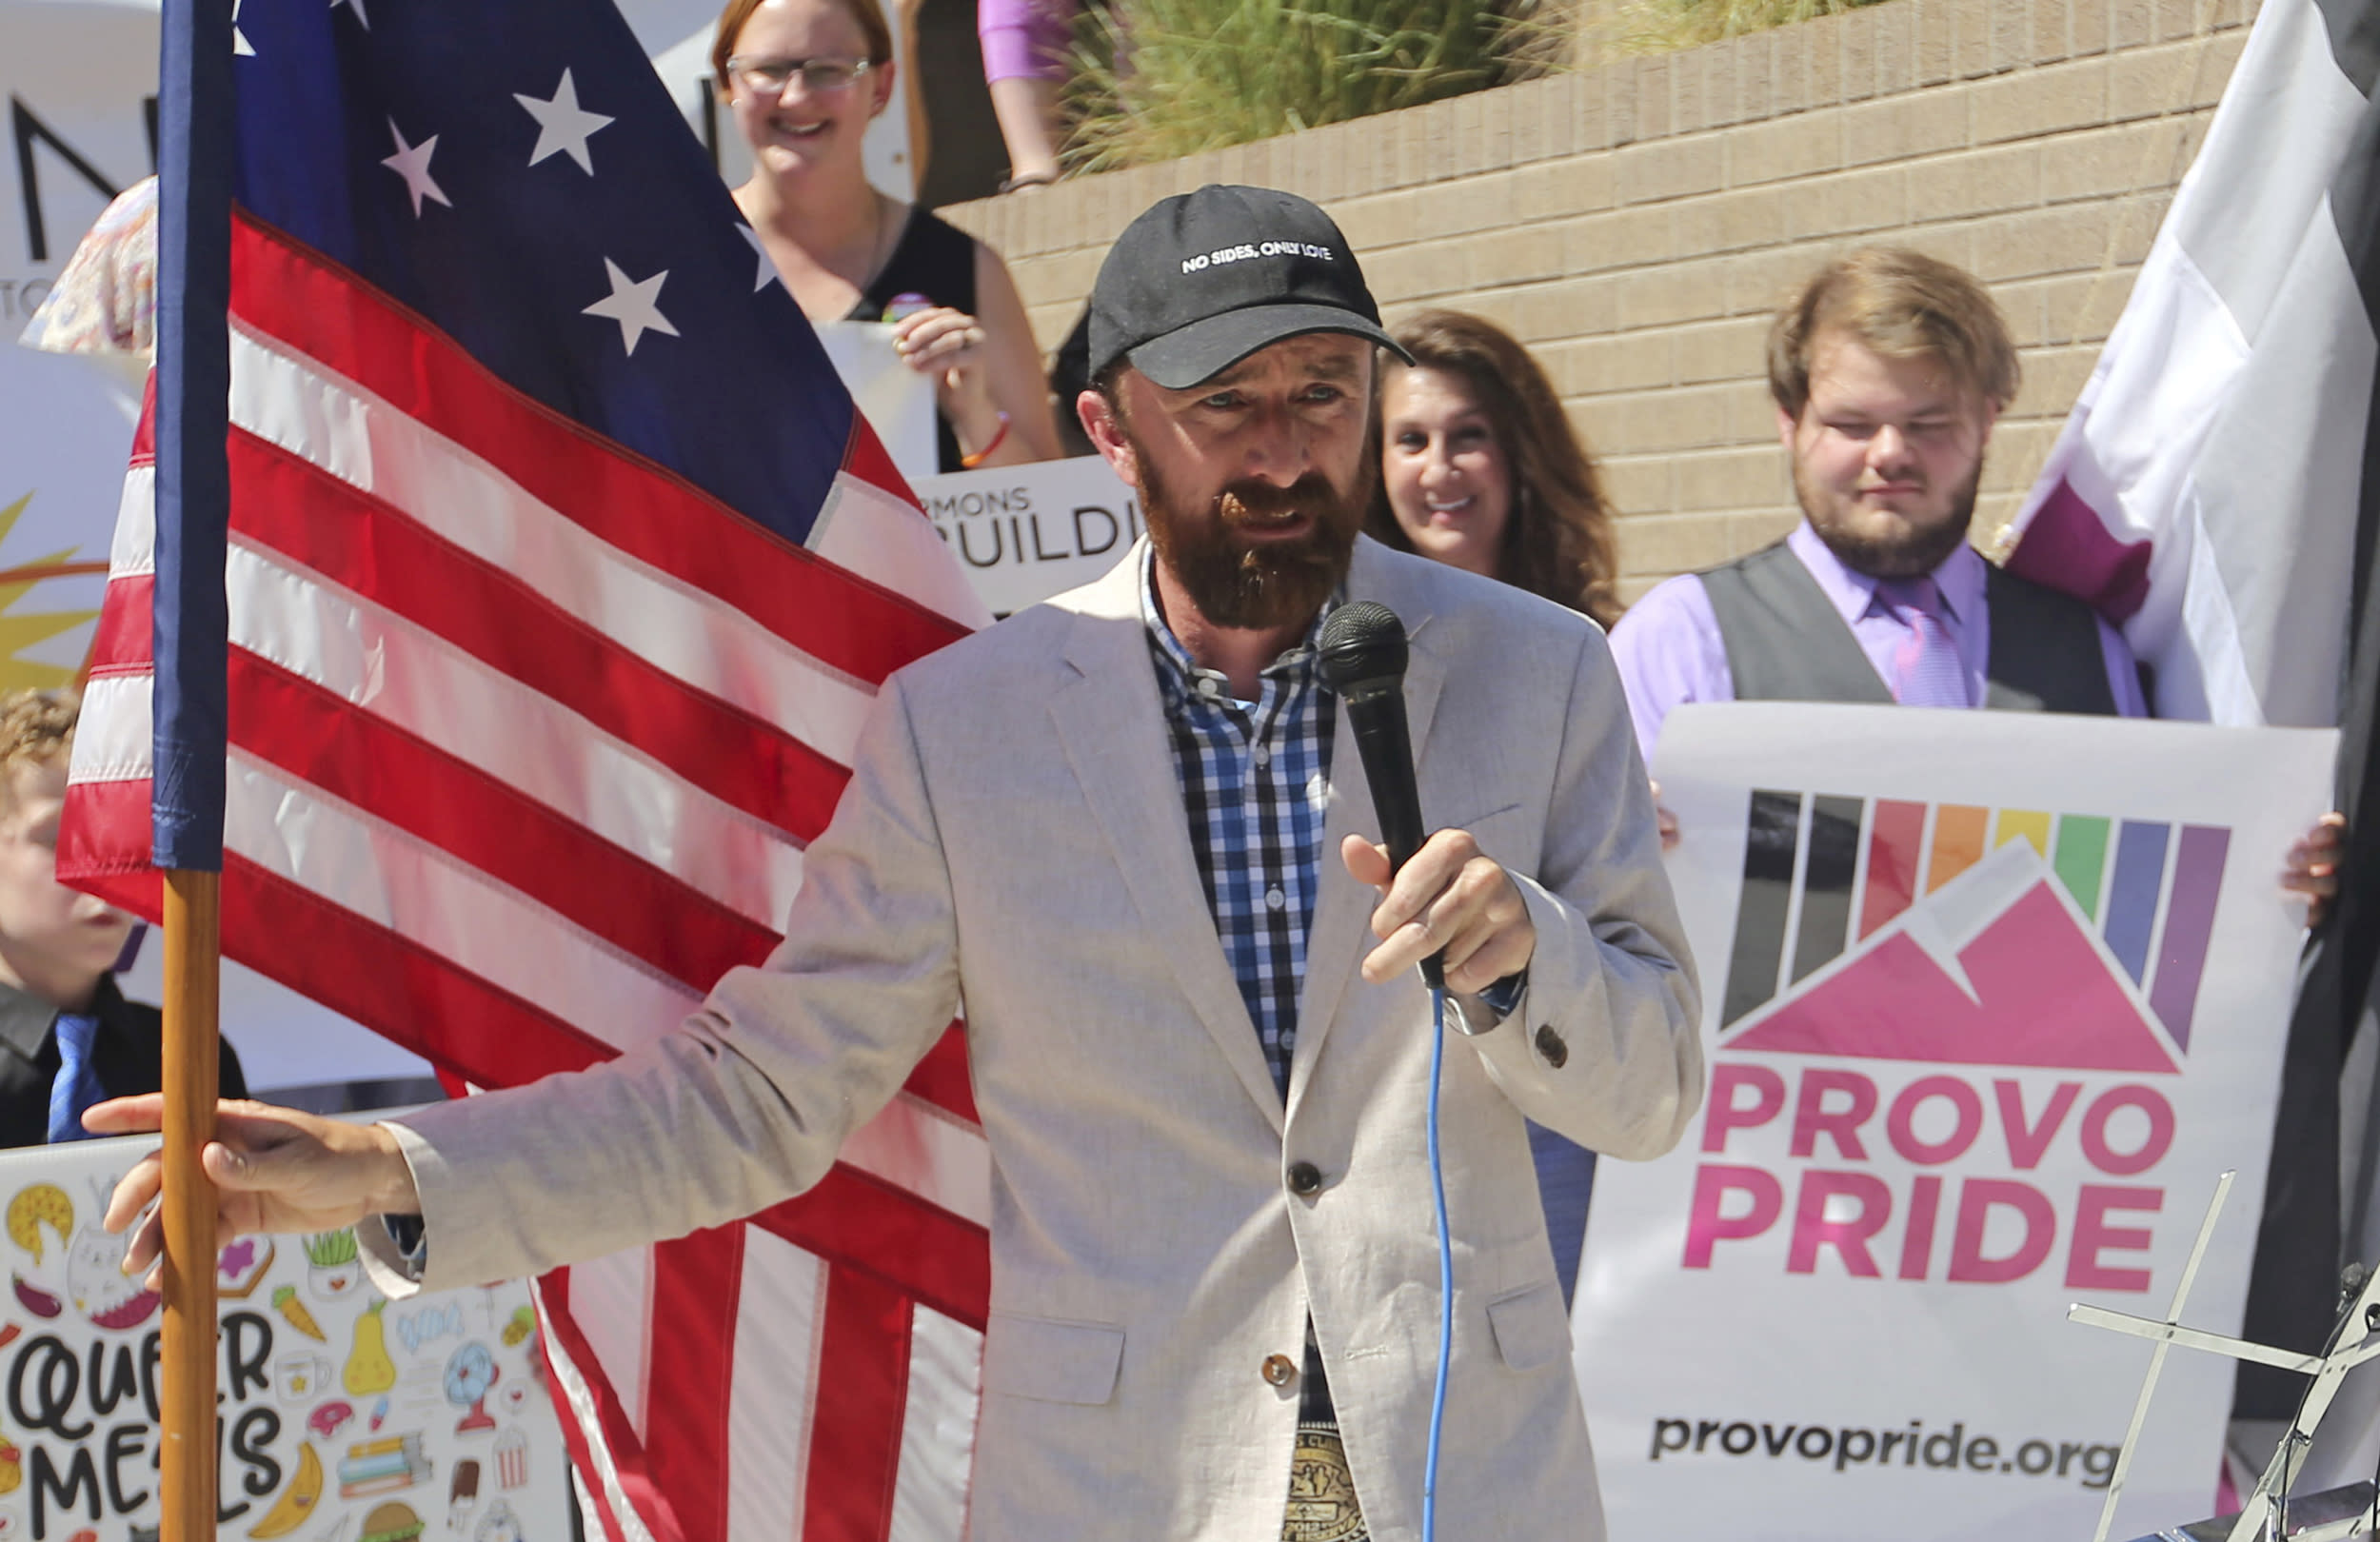 Utah Republican who came out as gay loses re-election bid